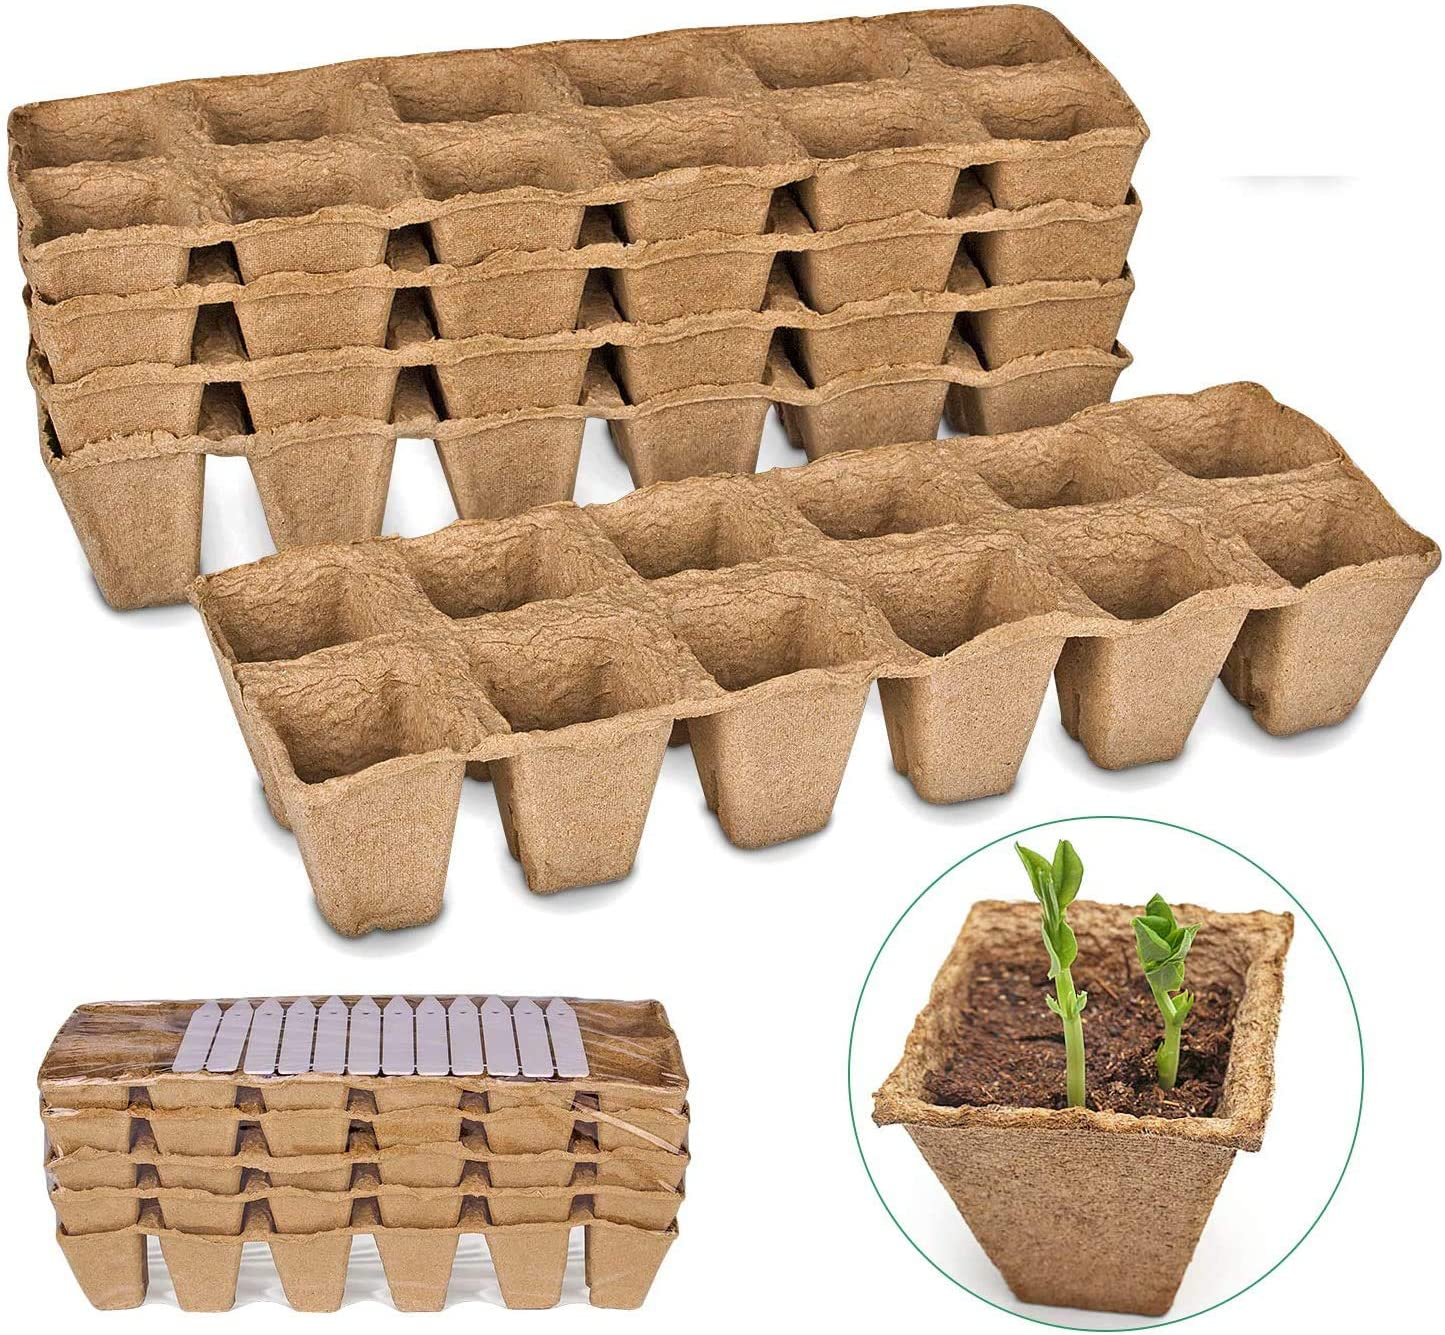 Seed Starter Peat Pots Kit for Garden Seedling Tray ANGTUO 100% Eco-Friendly Organic Germination Seedling Trays Biodegradable 5 Pack - 60 Cells 18 Plastic Plant Markers Included